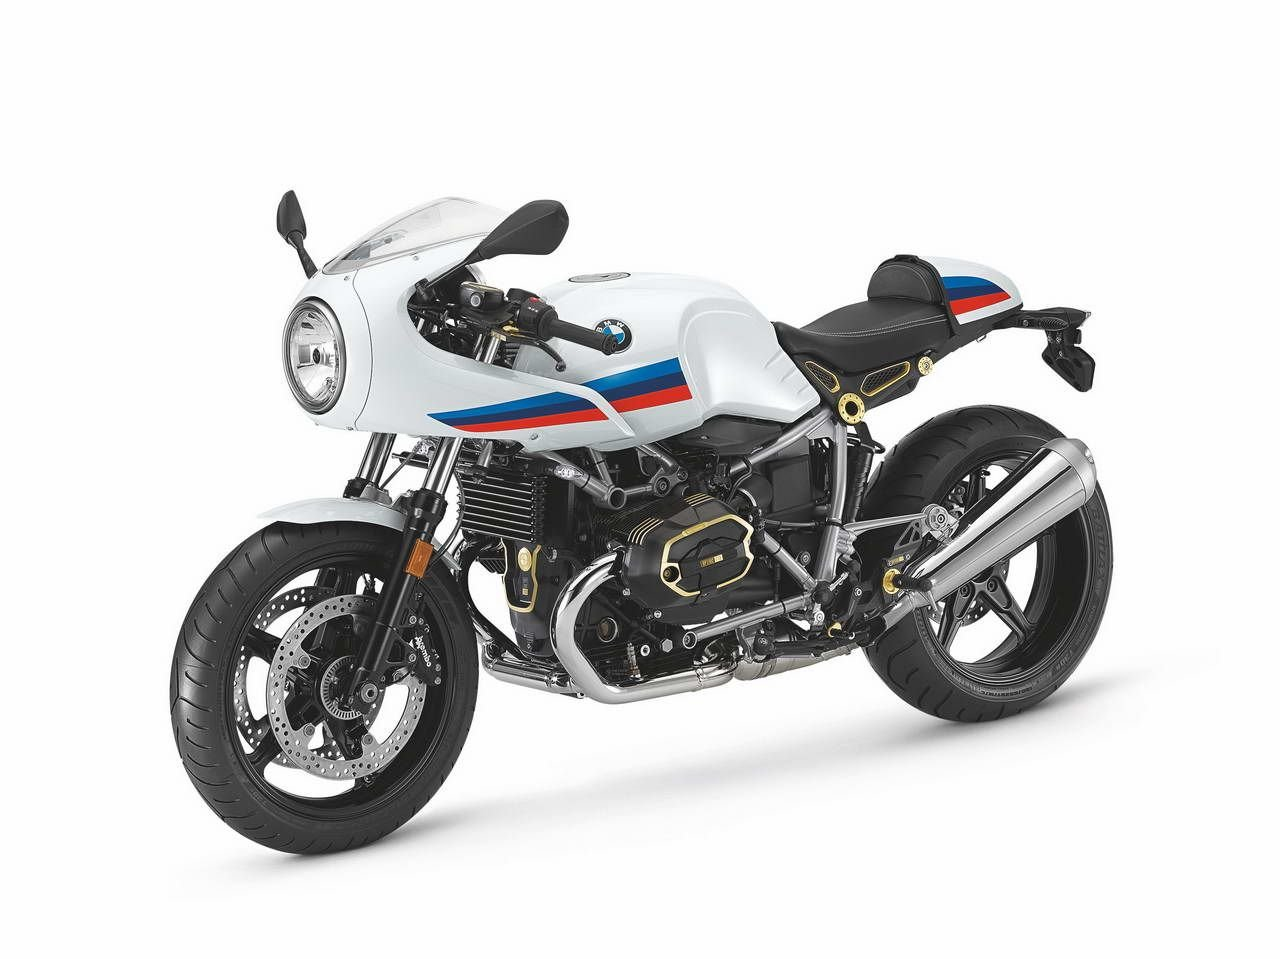 news prodotto bmw motorrad bmw motorrad spezial l 39 arte. Black Bedroom Furniture Sets. Home Design Ideas